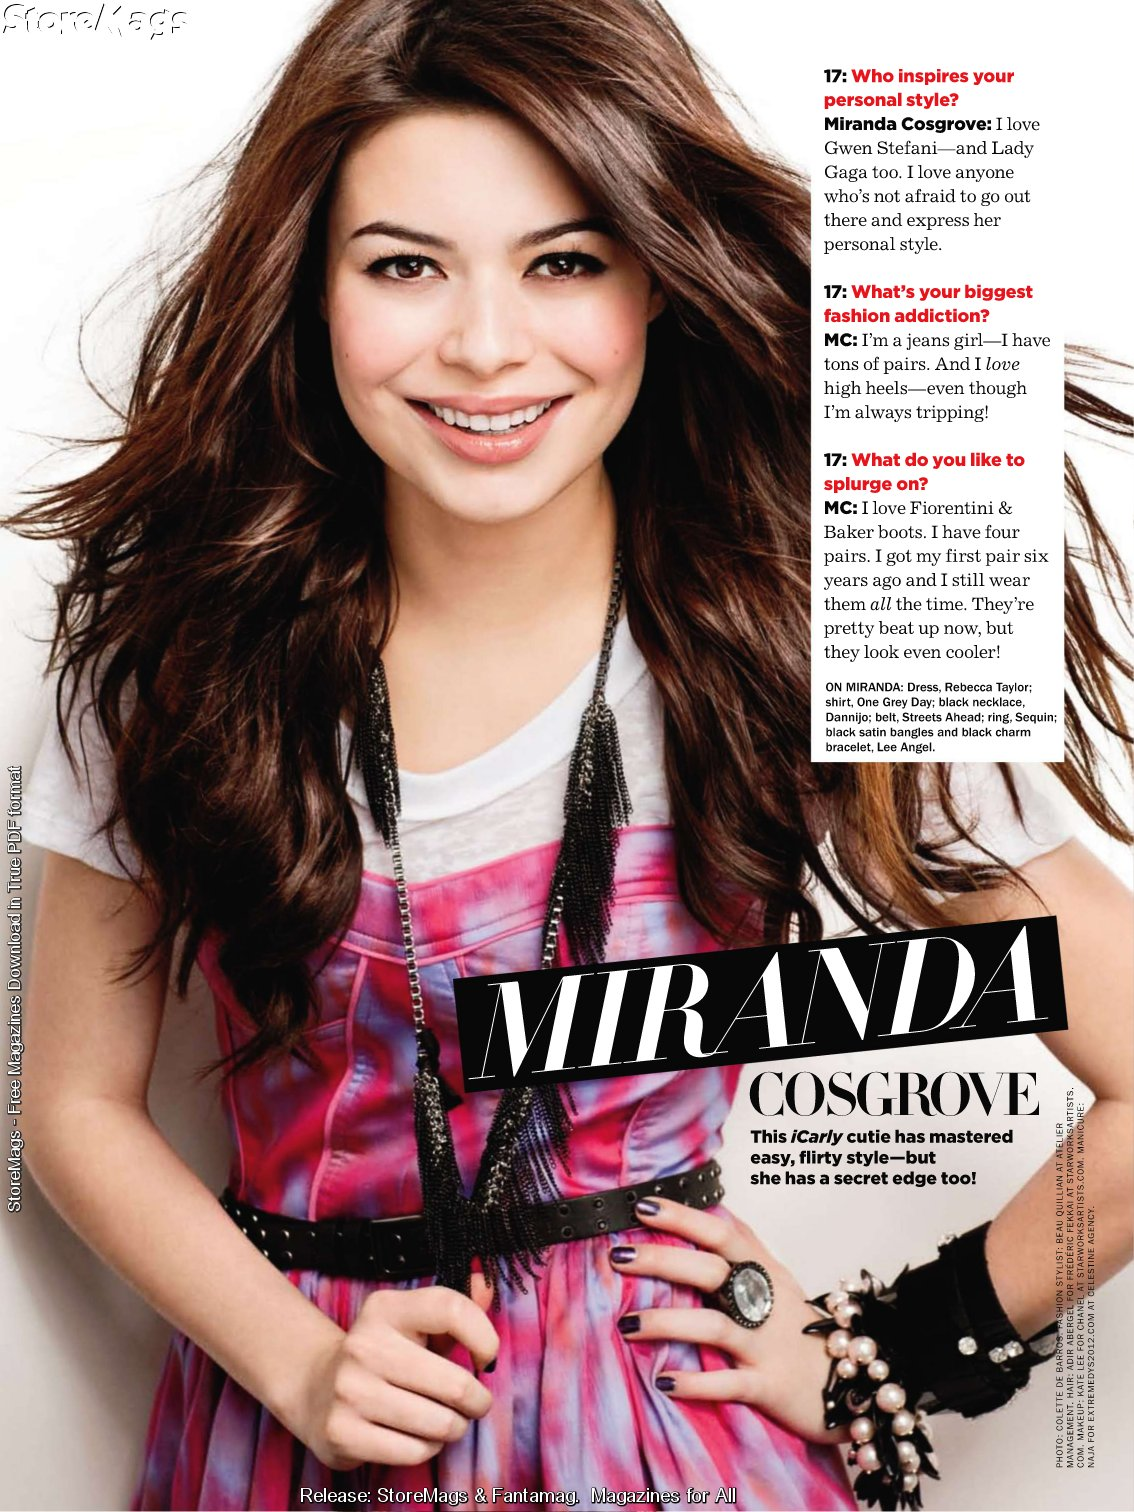 Seventeen's Style Stars Of 2010   Miranda Cosgrove & Victoria